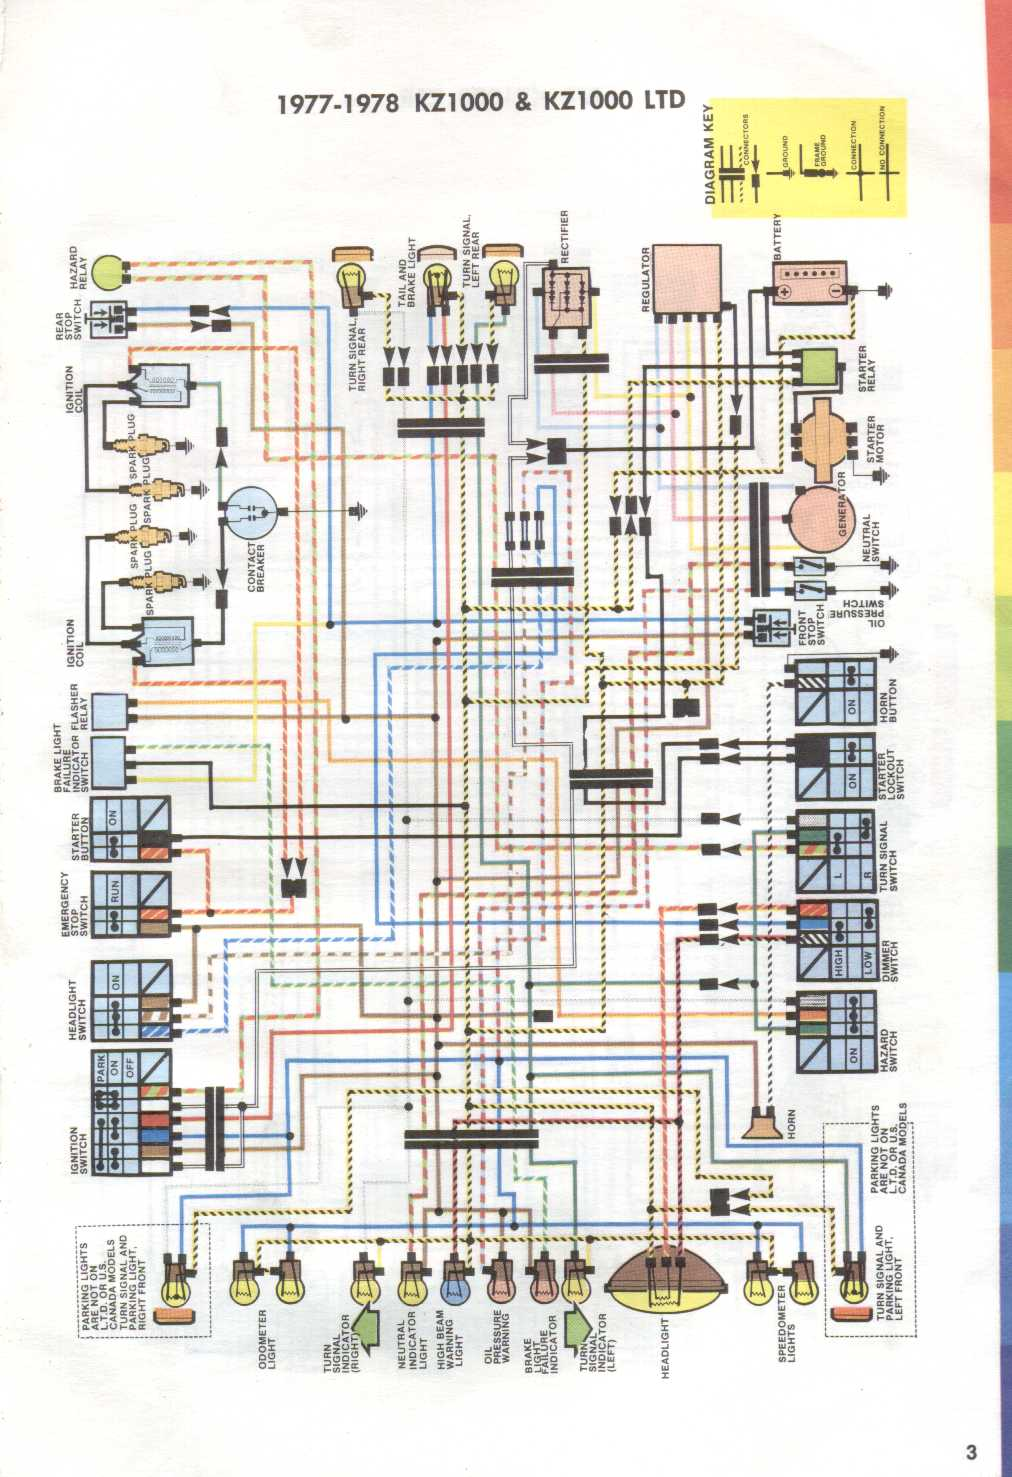 wiring diagram for 1977 1978 kawasaki kz1000 and kz1000ltd evan rh cycles evanfell com Cat 5 Wiring Diagram 1 2 HP Kohler Engine Wiring Diagrams